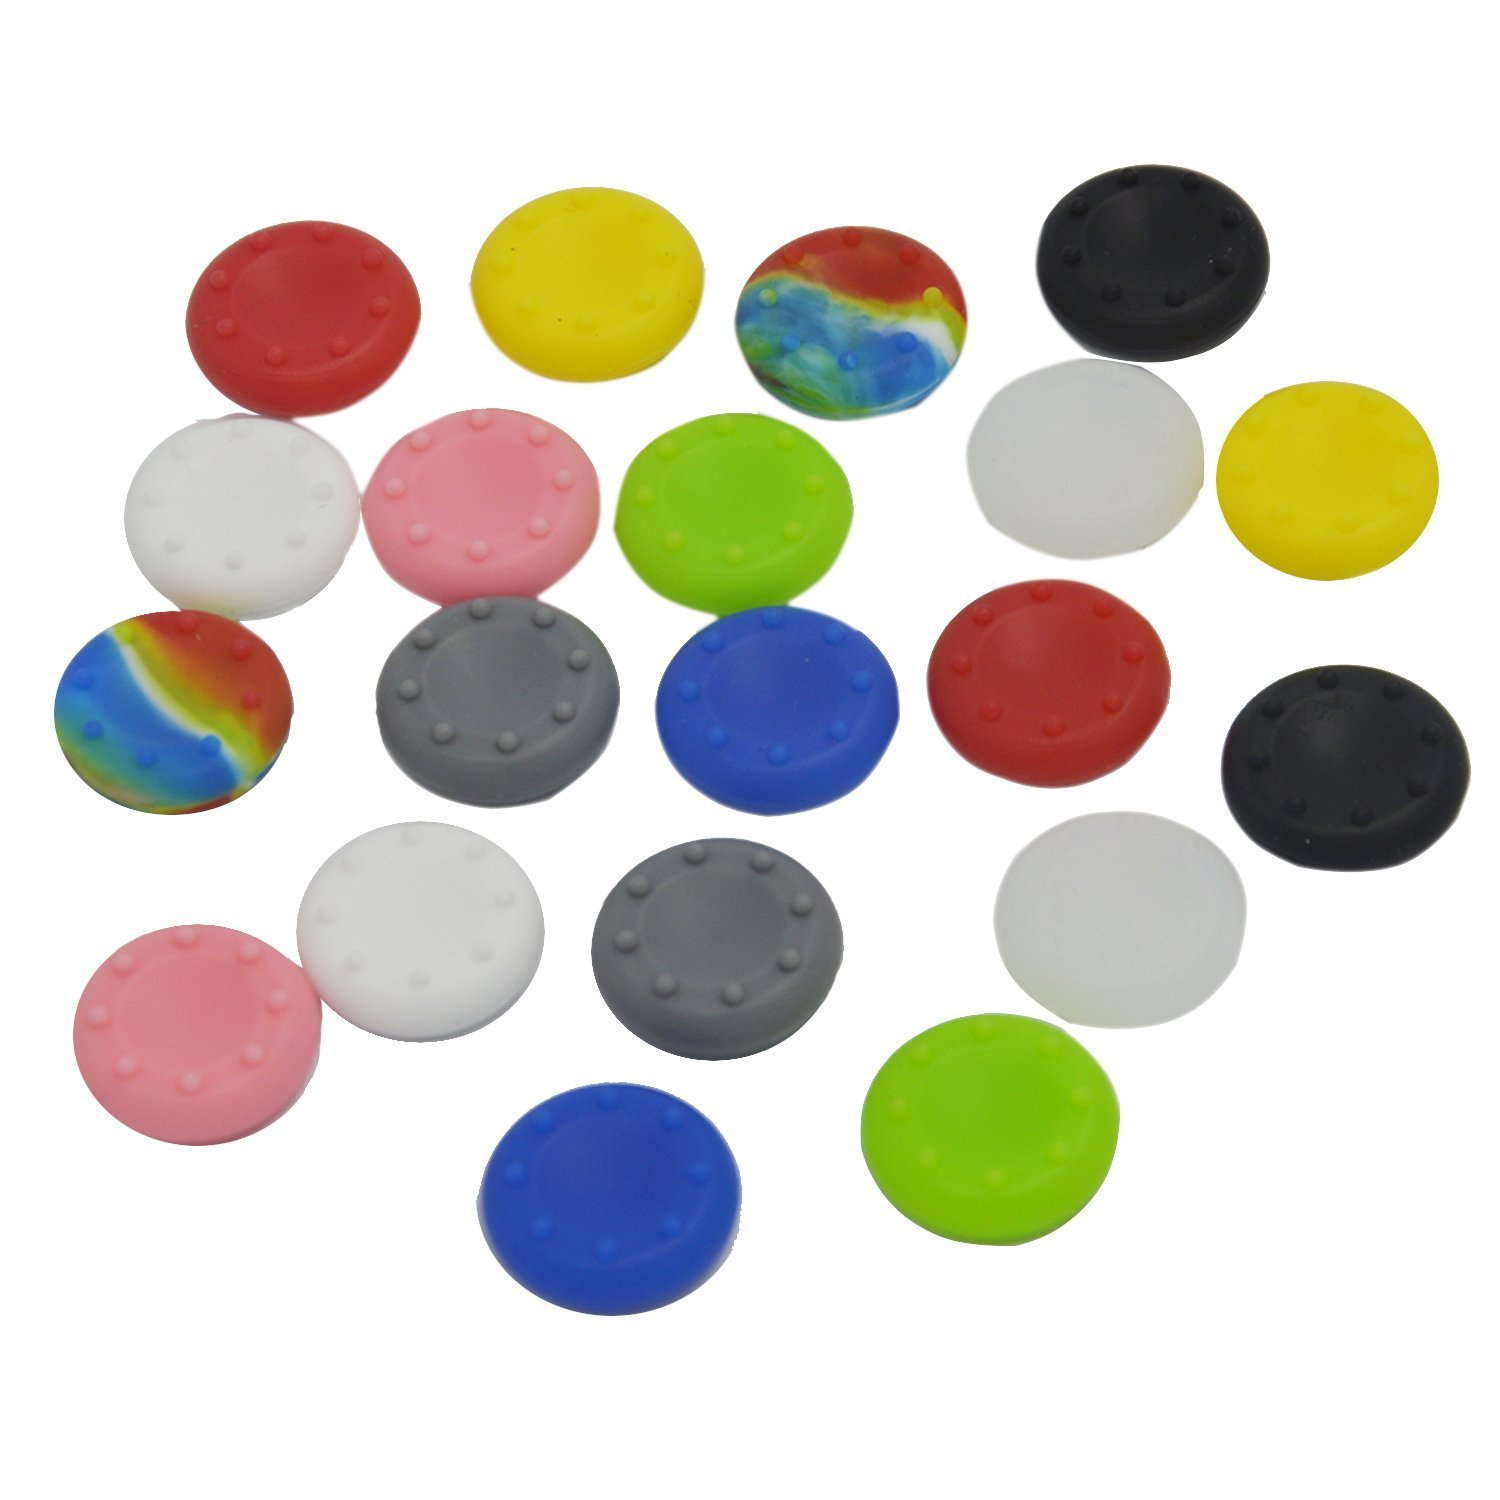 20 x Silicone Analog Controller Thumb Stick Grips Cap Cover For PS3 Xbox 360 Xbox One Game Accessories Replacement Parts 6pcs lot soft thumb grips thumbstick joystick high enhancements cover caps skin fit for sony play station 4 ps4 ps3 xbox 360